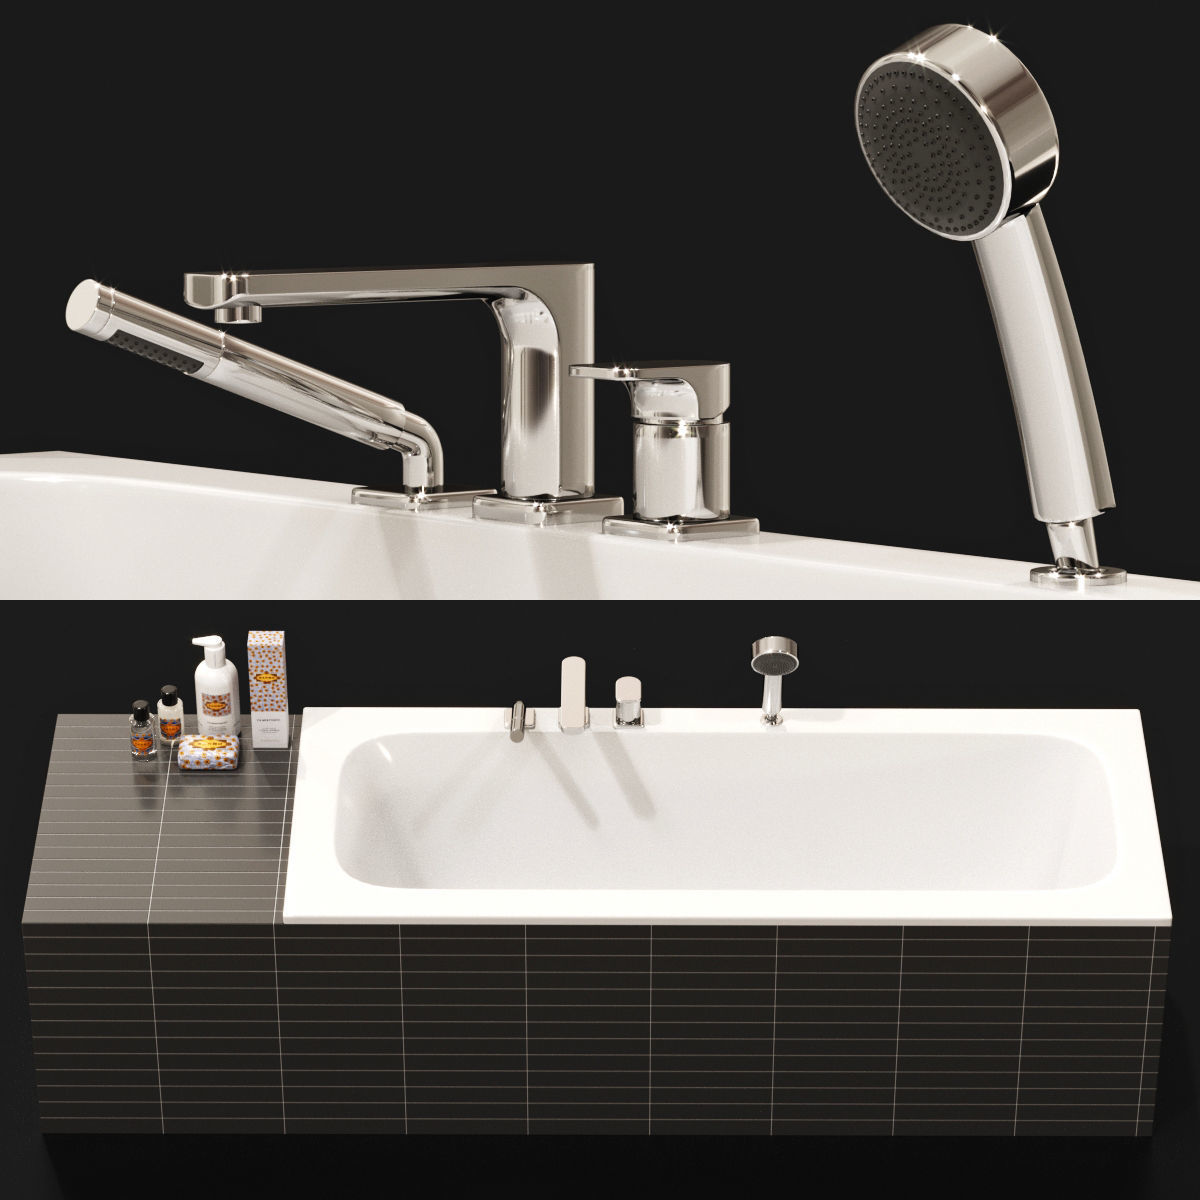 Villeroy and Boch Bathtub and Tap with Cosmetics